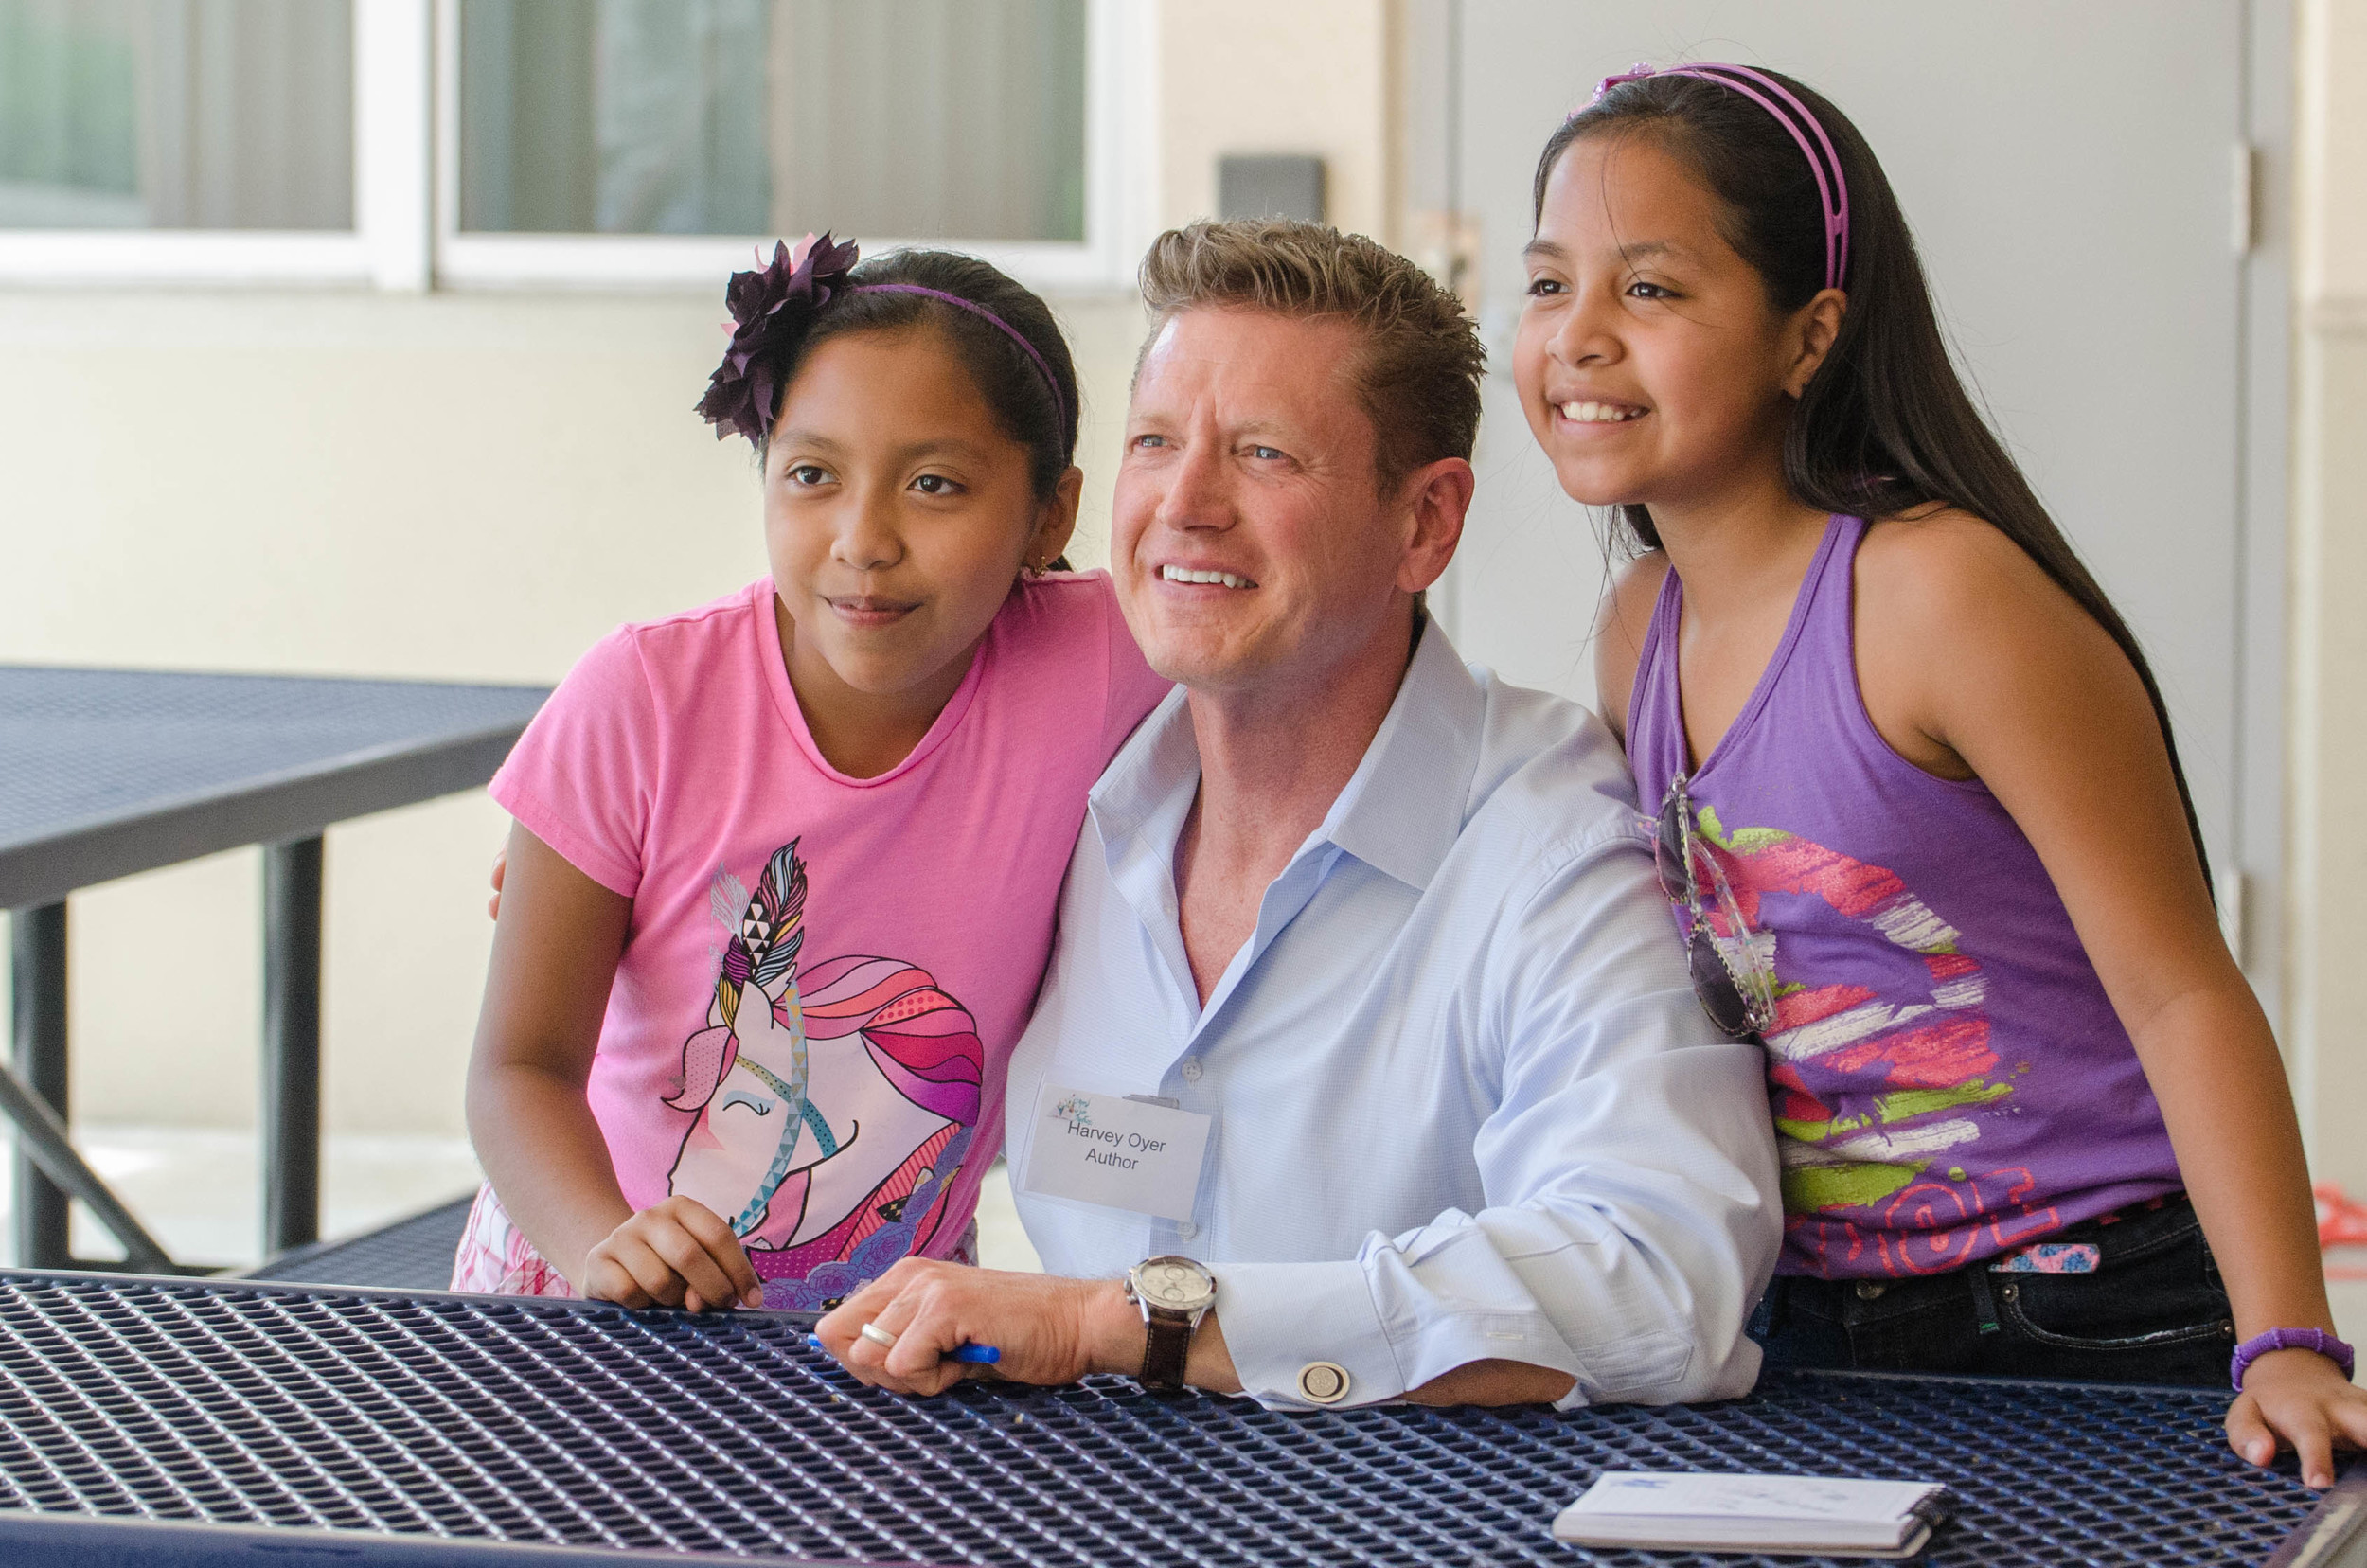 harvey-oyer-with-students-2.jpg